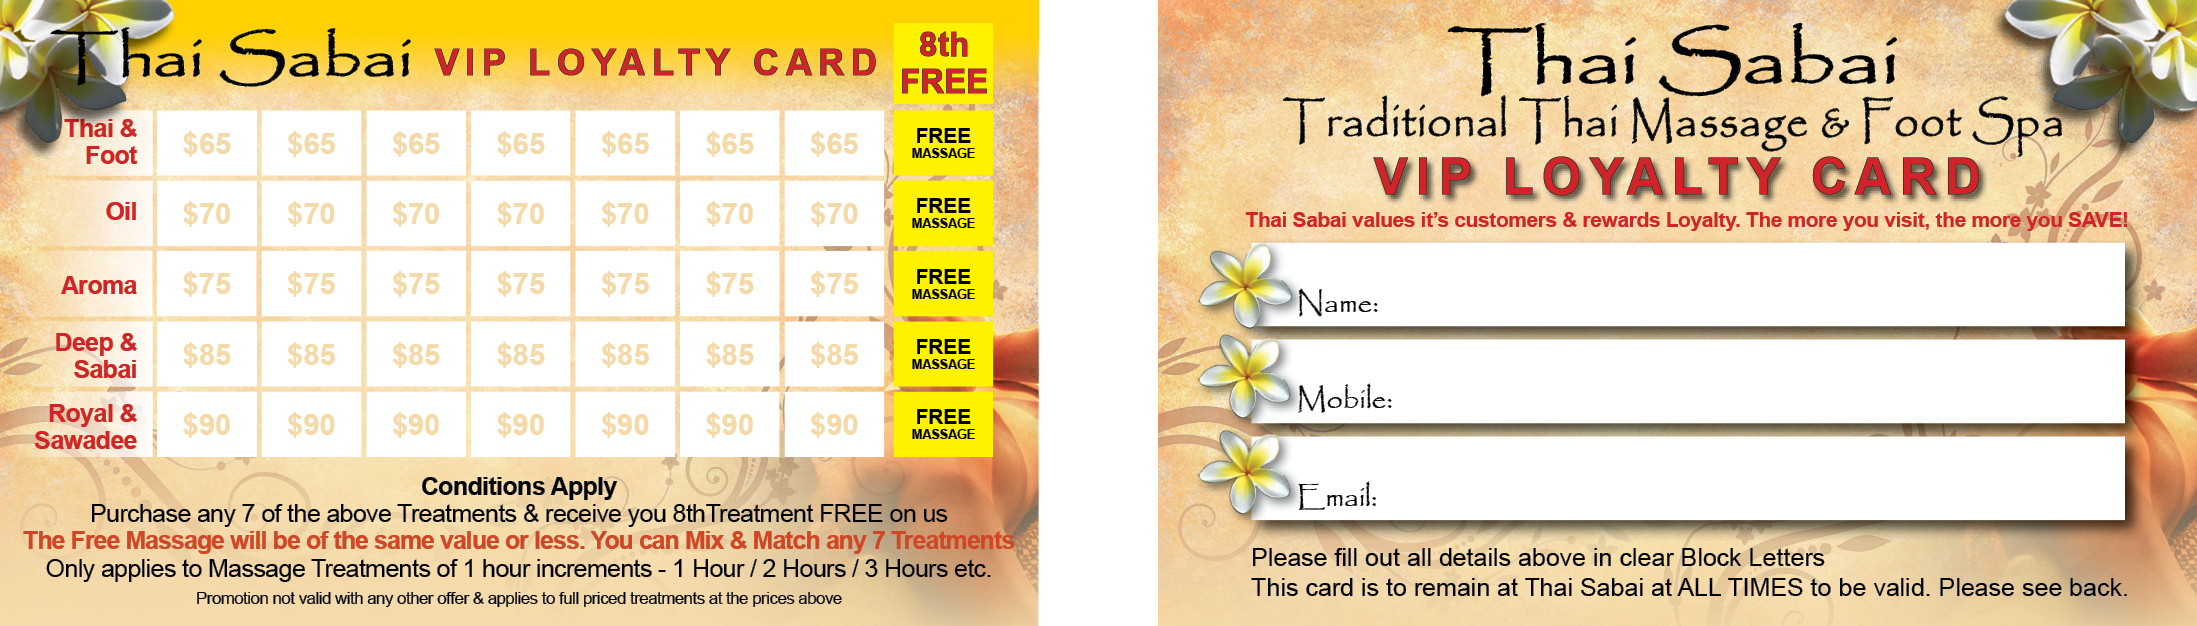 Thai Sabai Loyalty Card